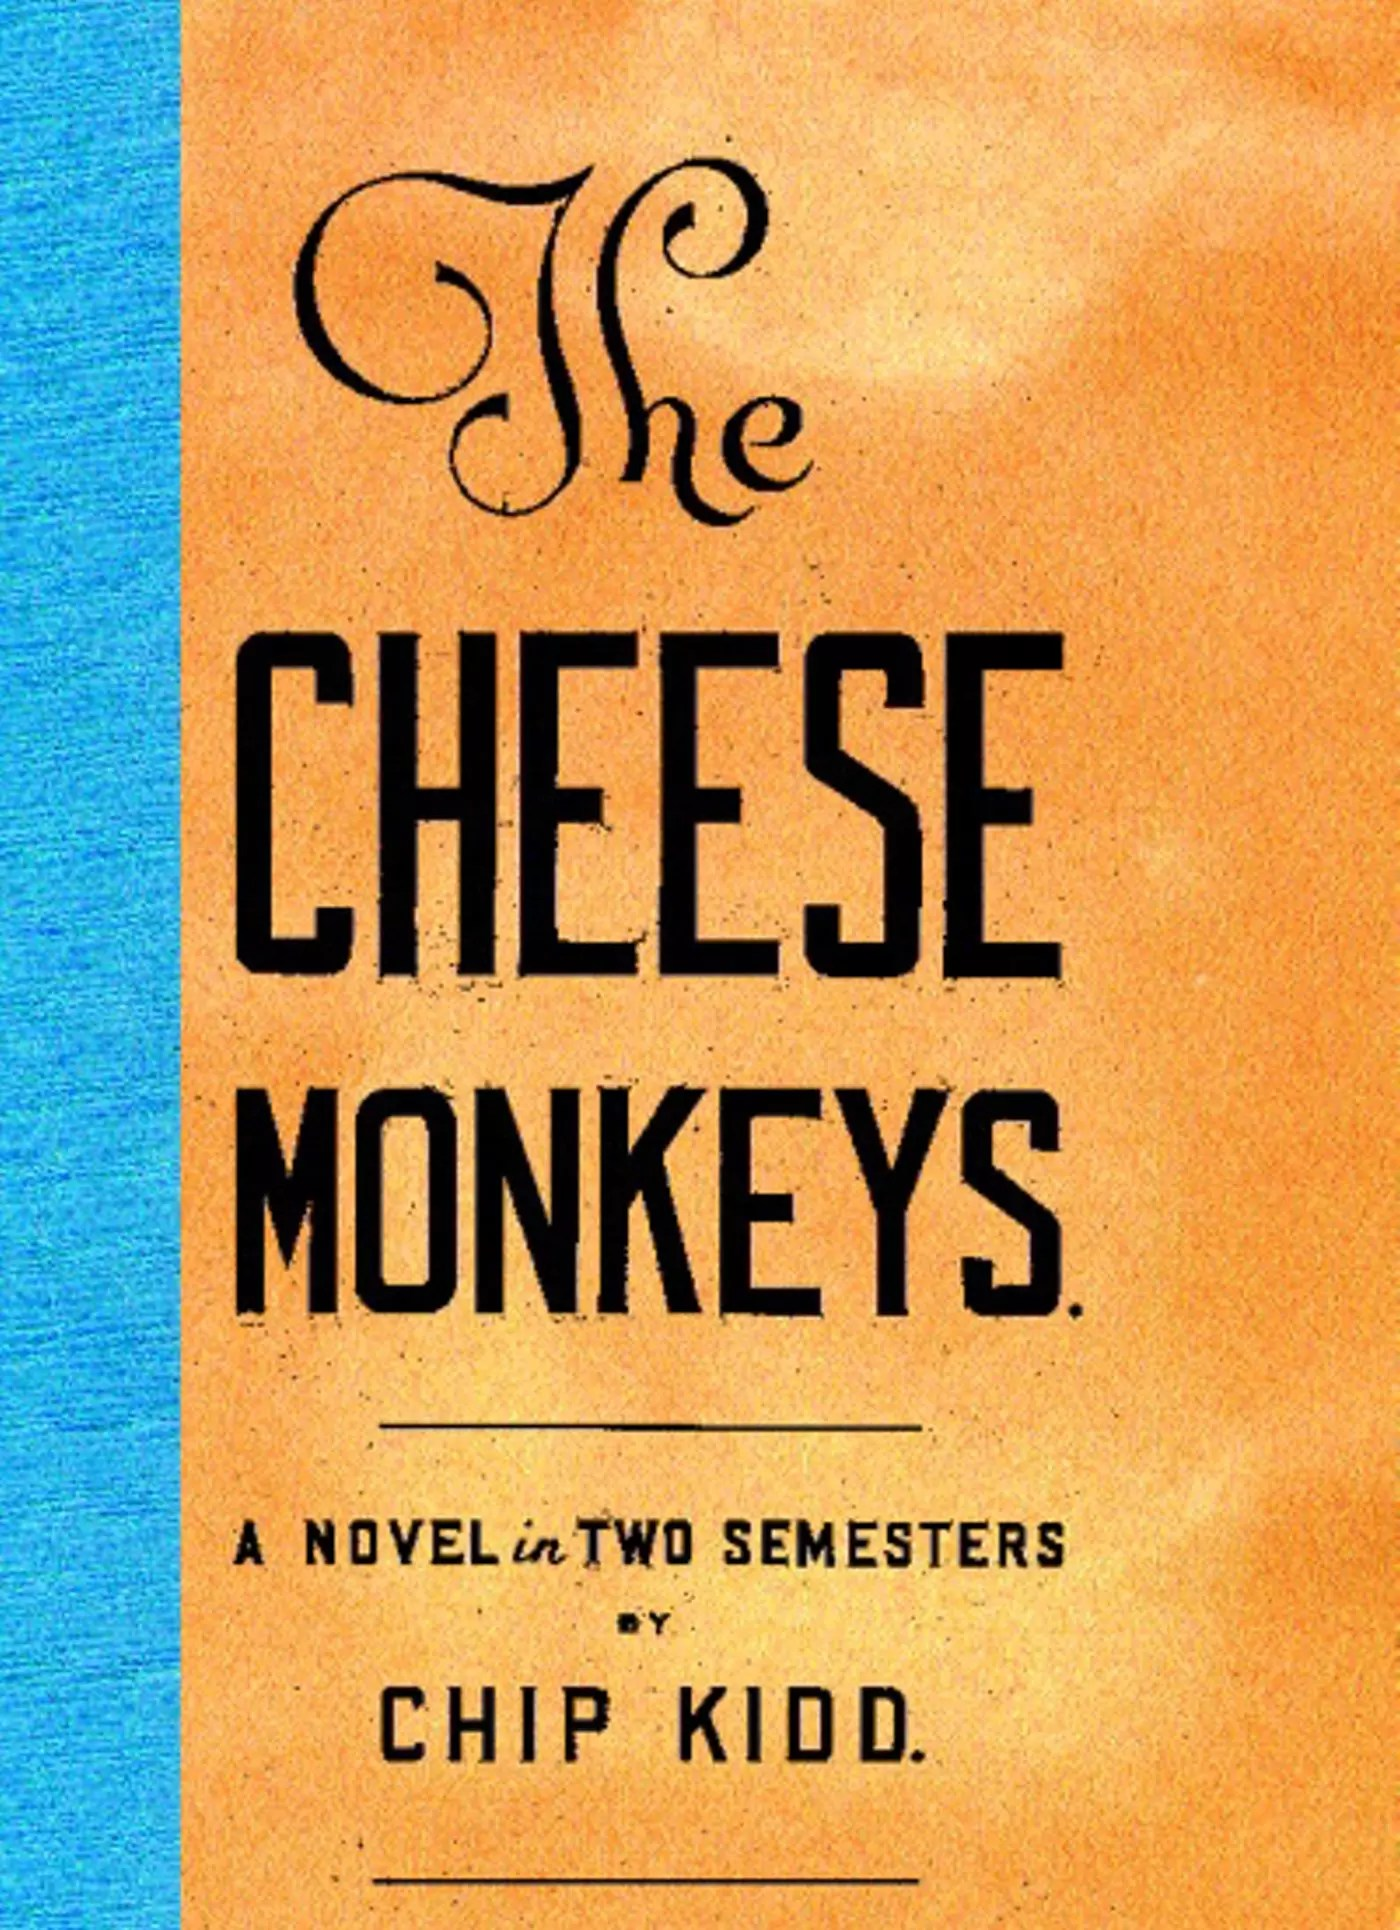 chip kidd cheese monkeys cover